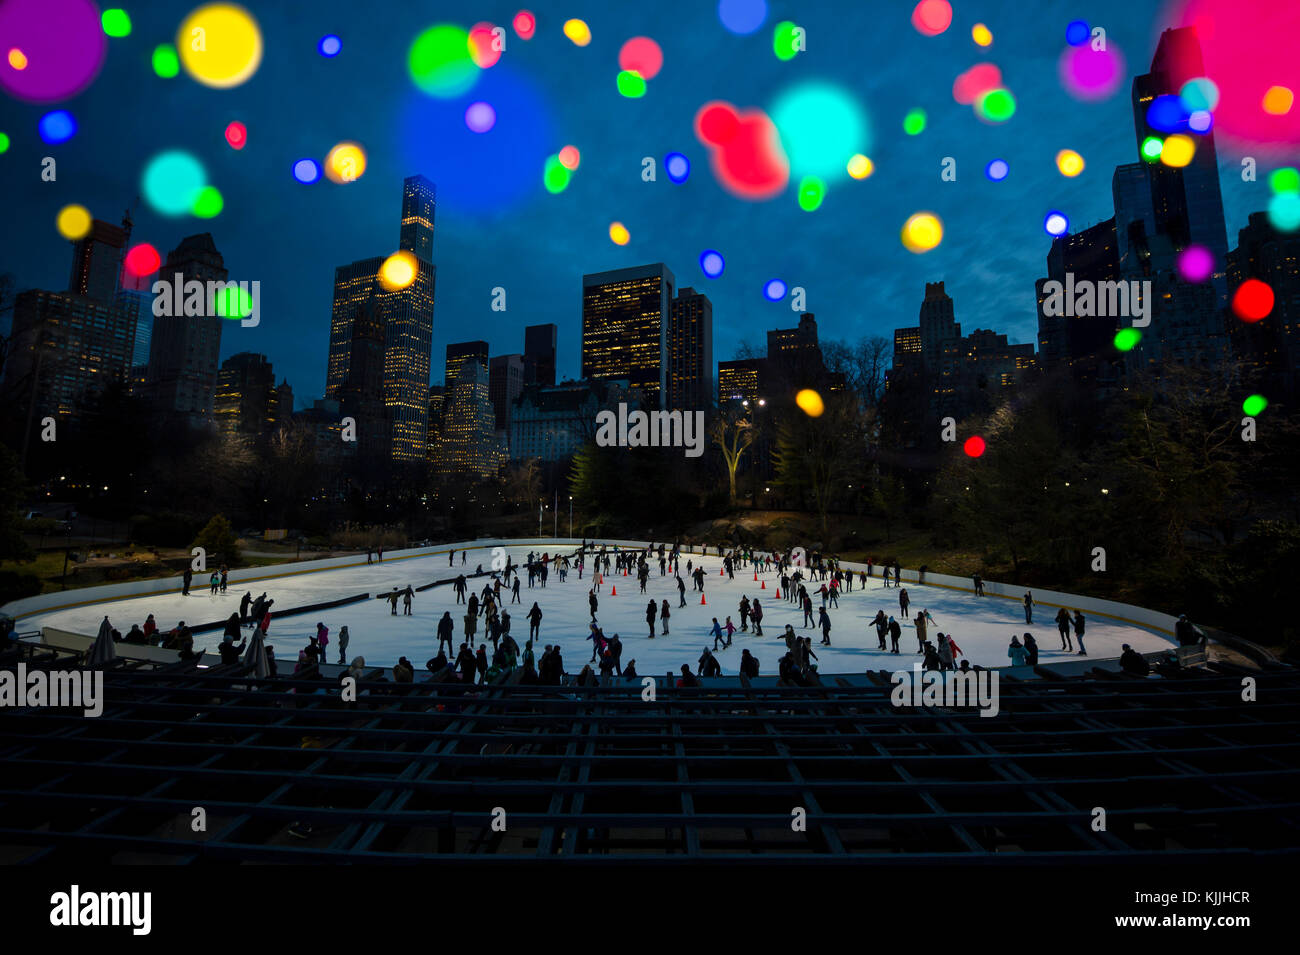 Scenic city skyline night view with ice skating rink at dusk with abstract defocus bokeh christmas lights Stock Photo